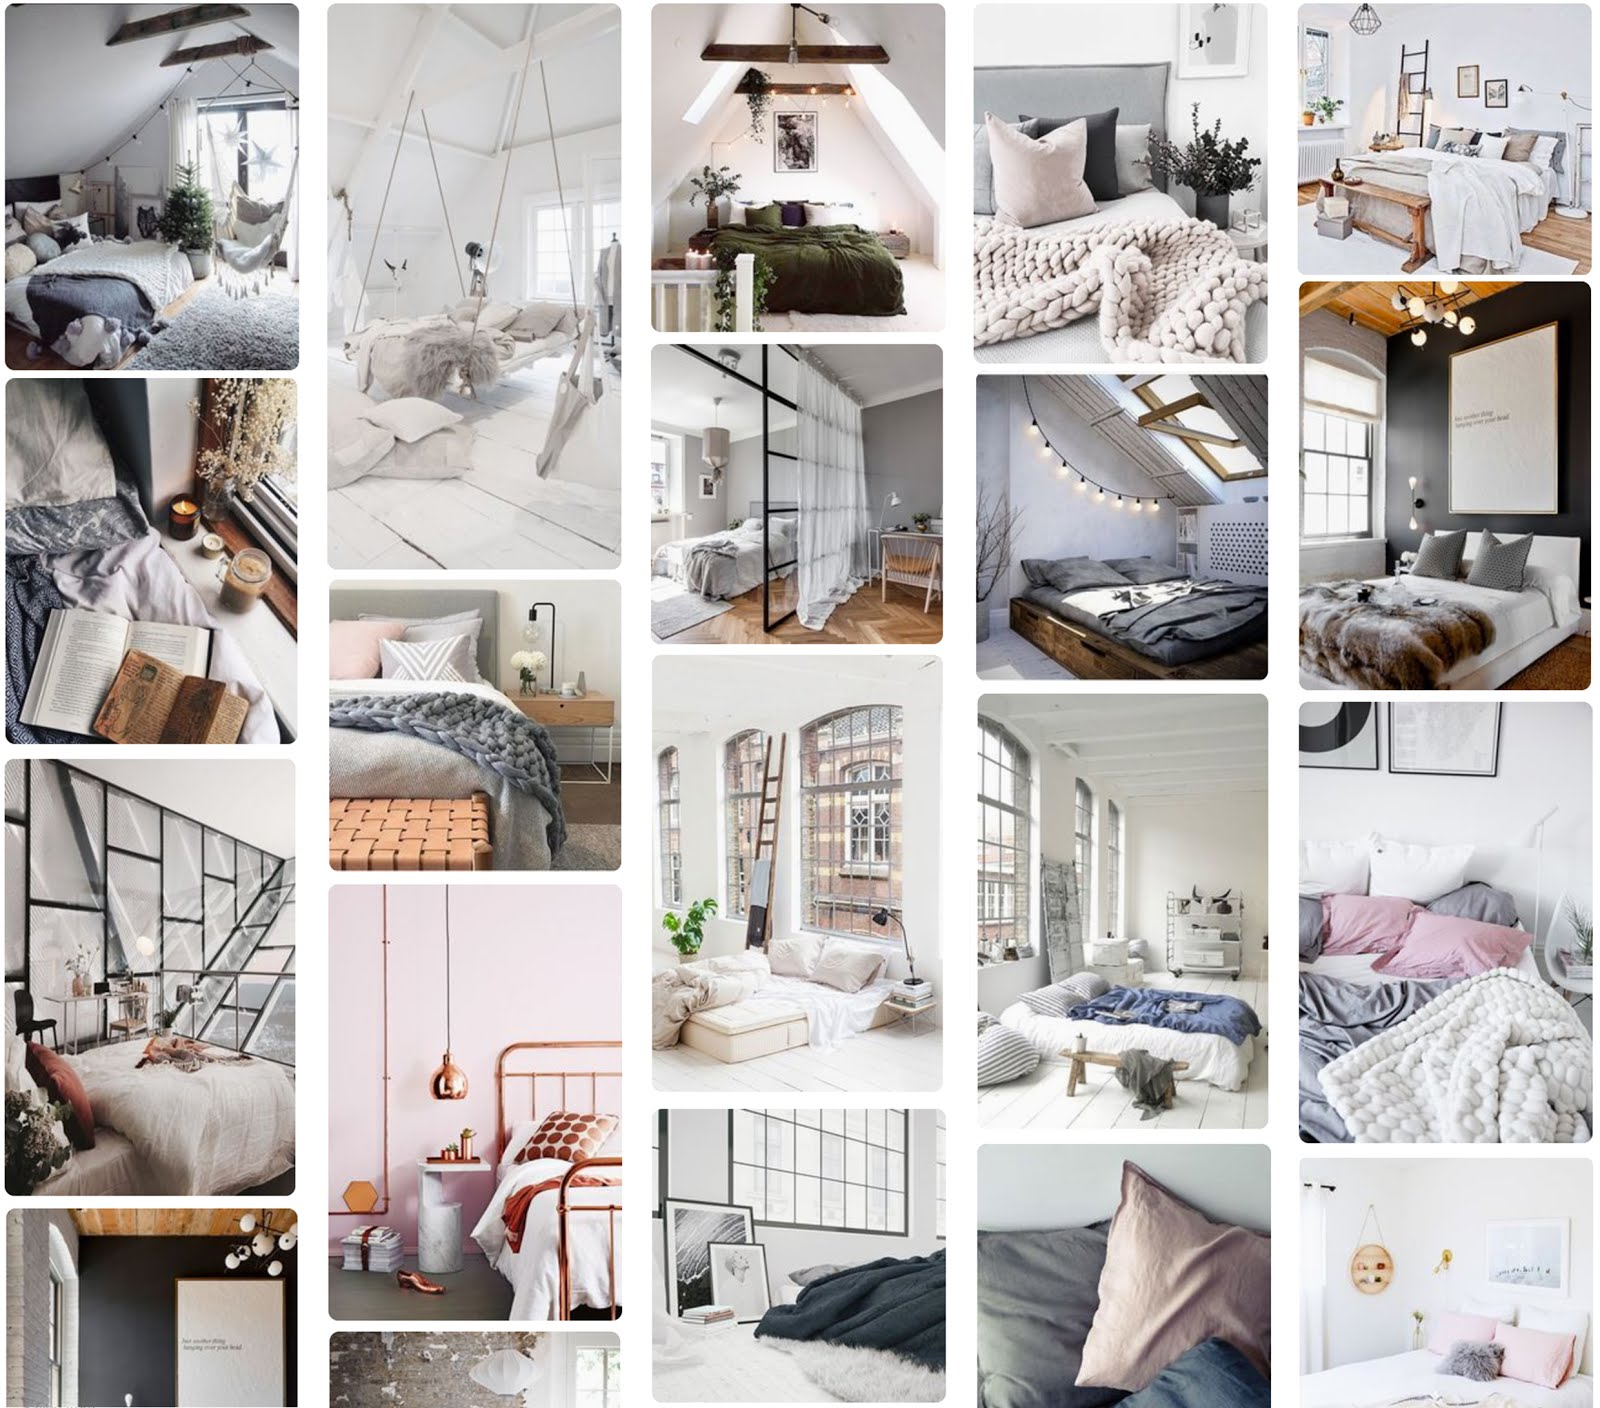 pinterest dream bedroom collage